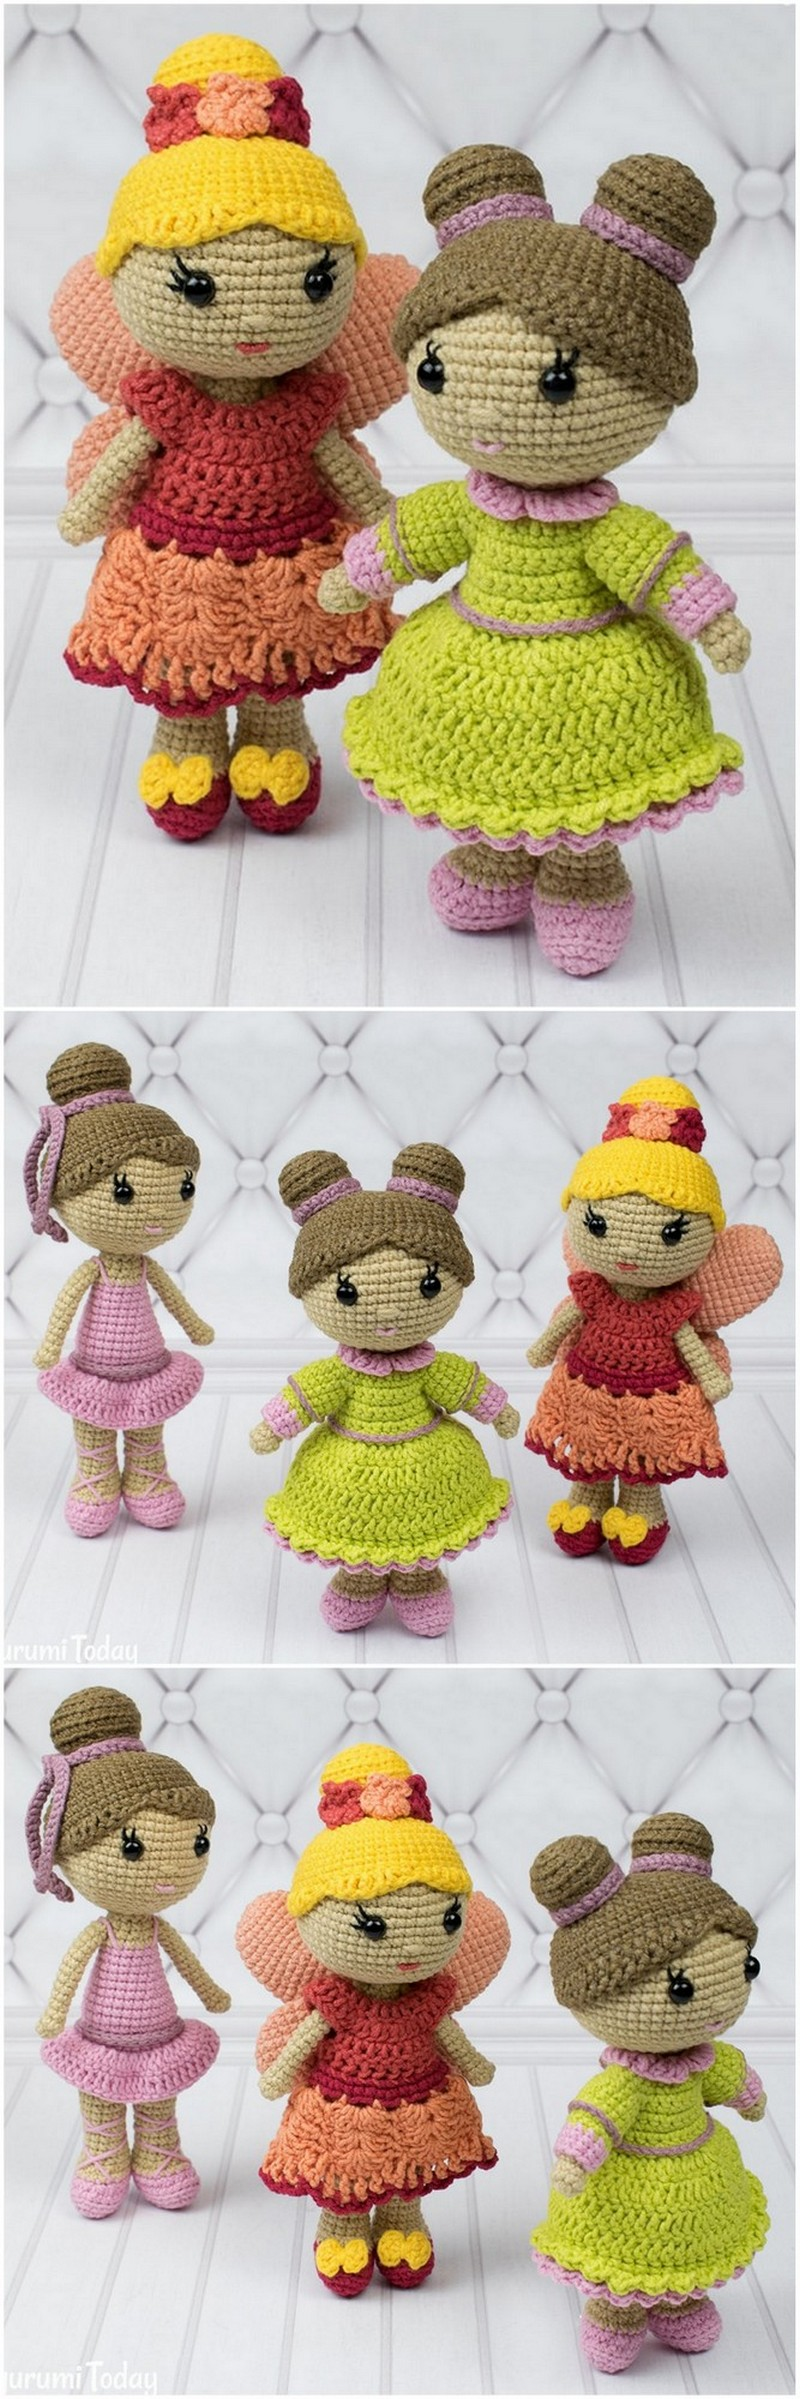 Crochet Amigurumi Doll Pattern (34)